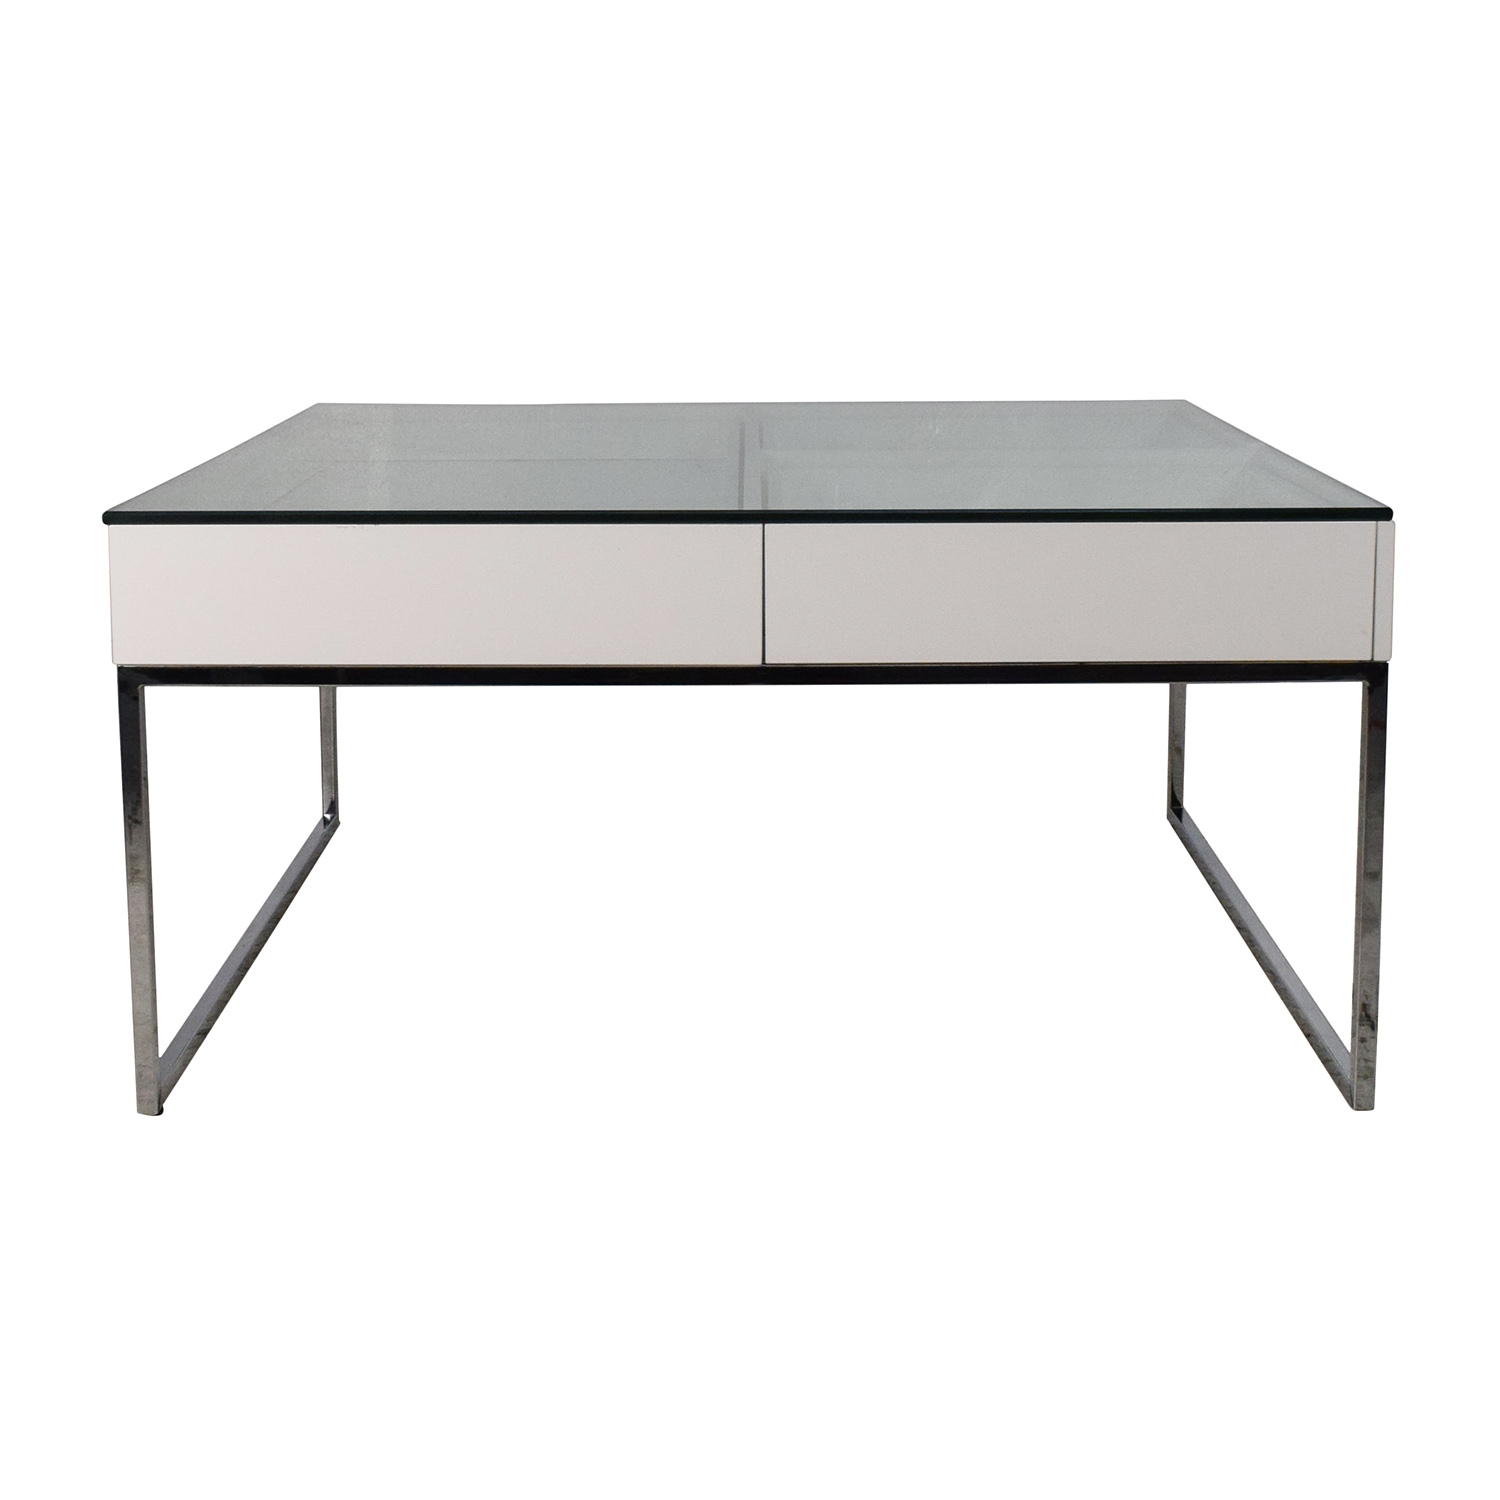 BoConcept BoConcept White Coffee Table used